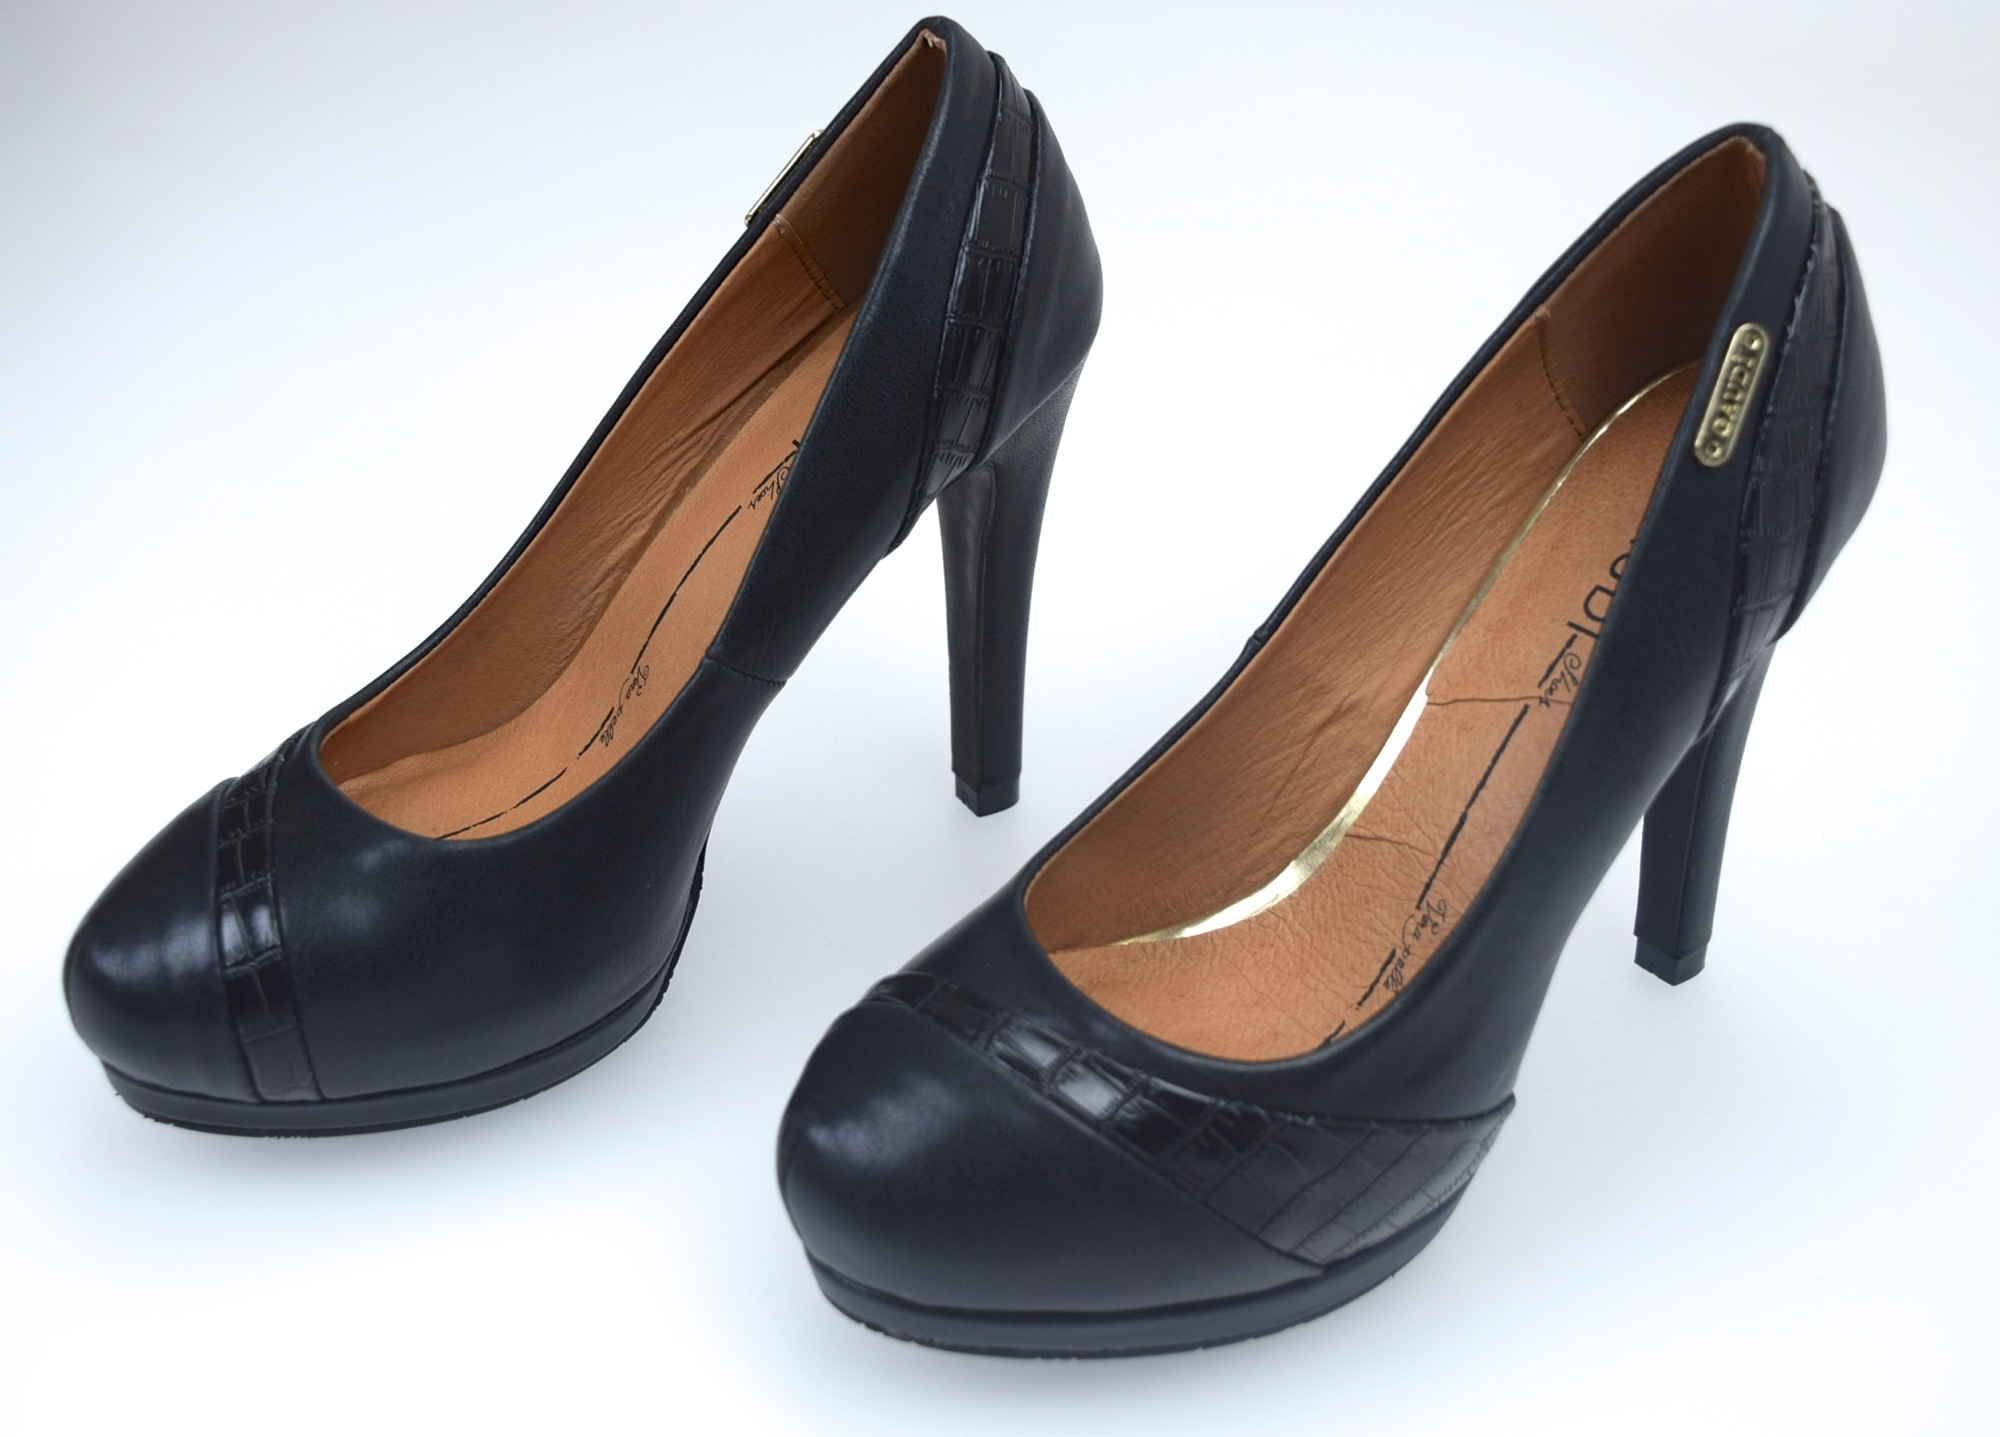 GAUDI Damenschuhe HIGH HEELS PUMPS DECOLTE Schuhe V34-65600 SYNTHETIC CODE V34-65611 - V34-65600 Schuhe cc6e58